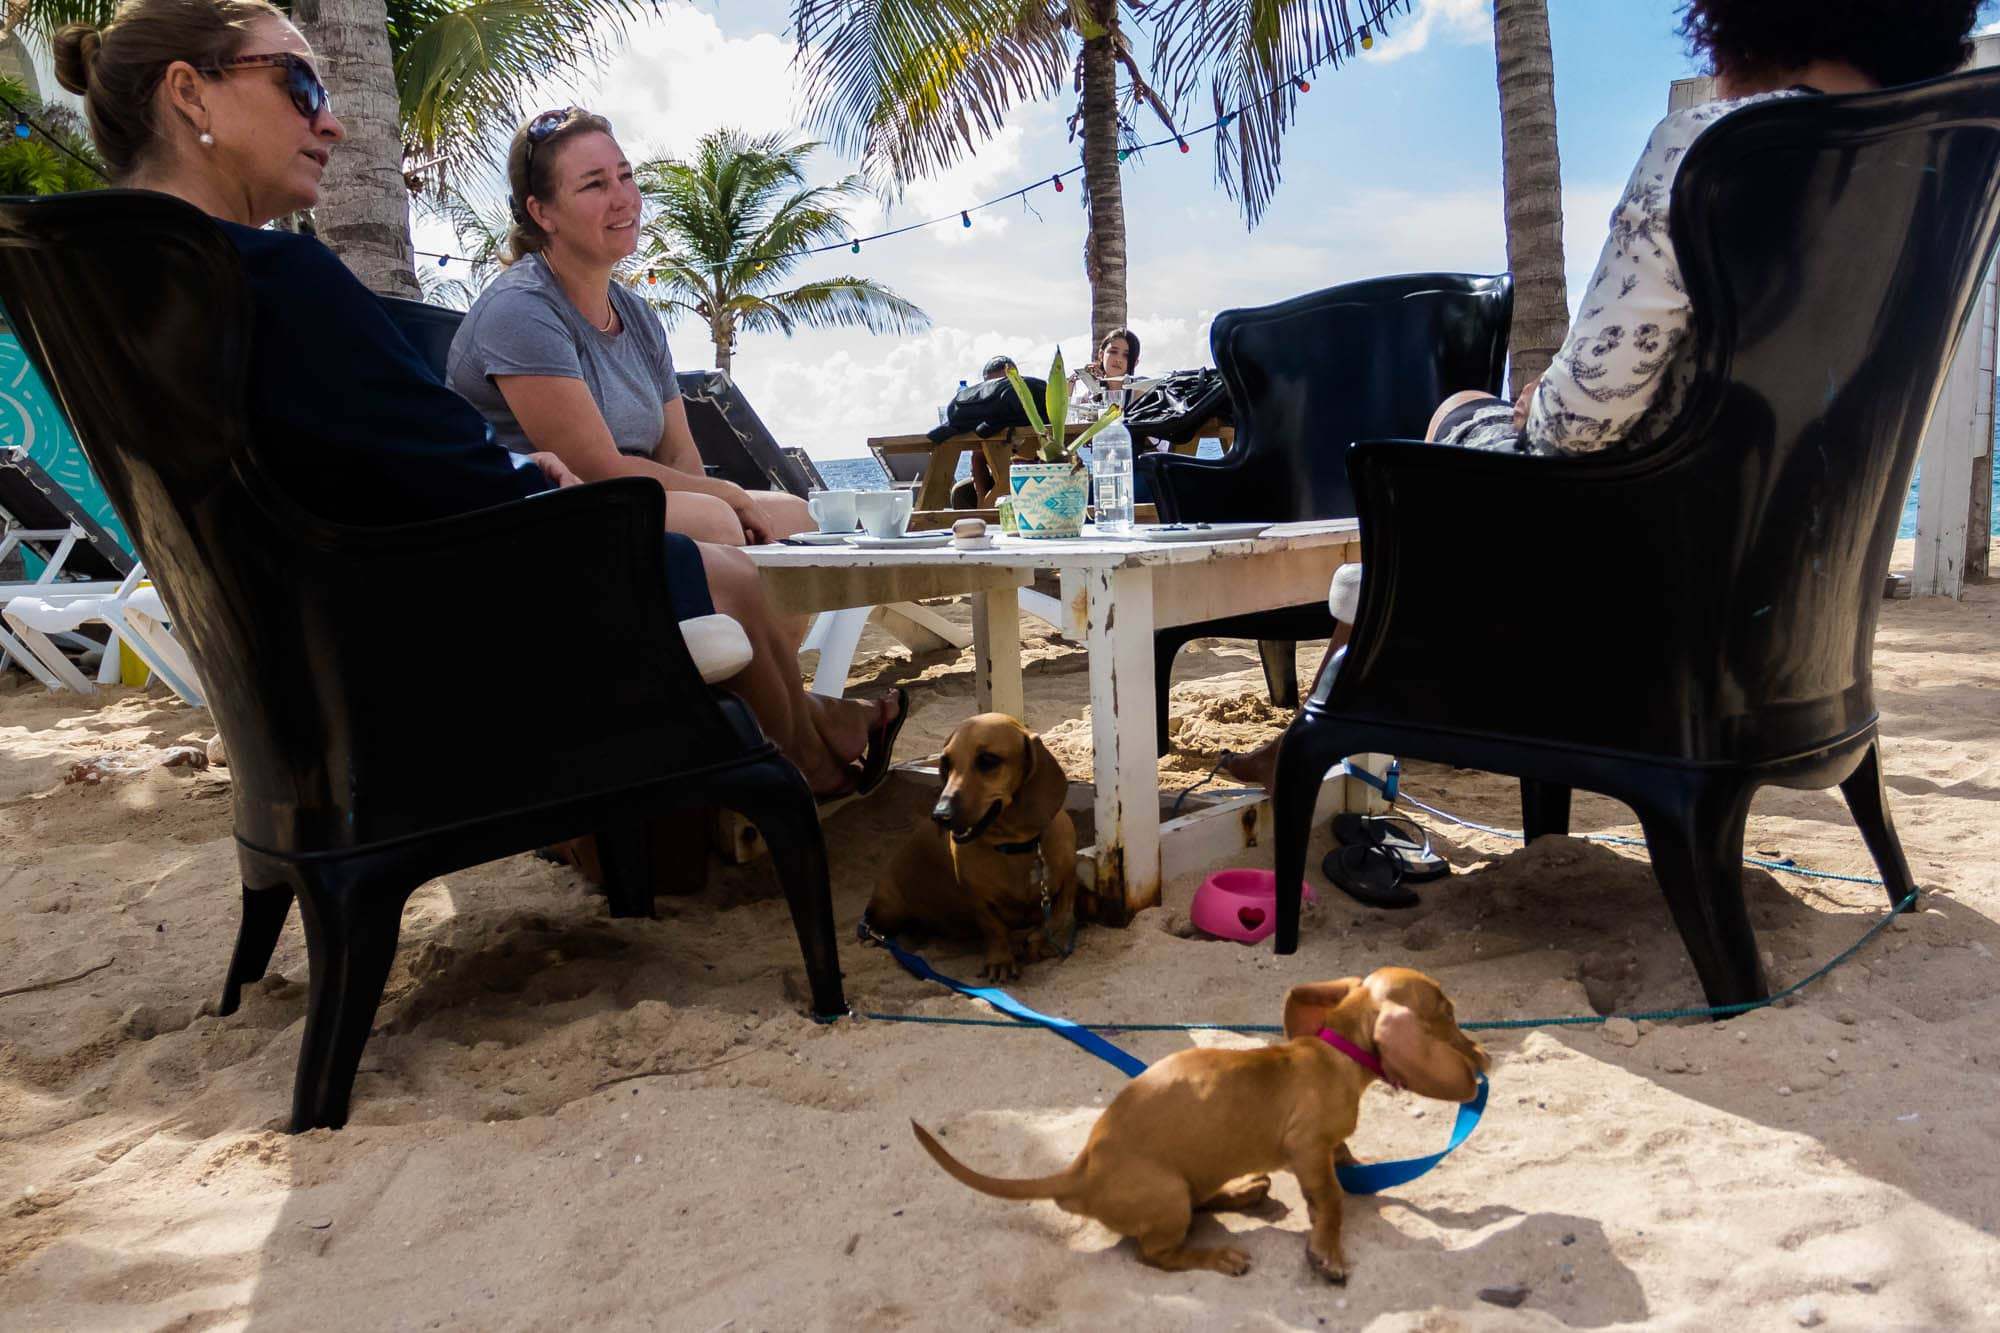 Guests and their dogs visiting Dive City Curacao in the Pietermaai District.